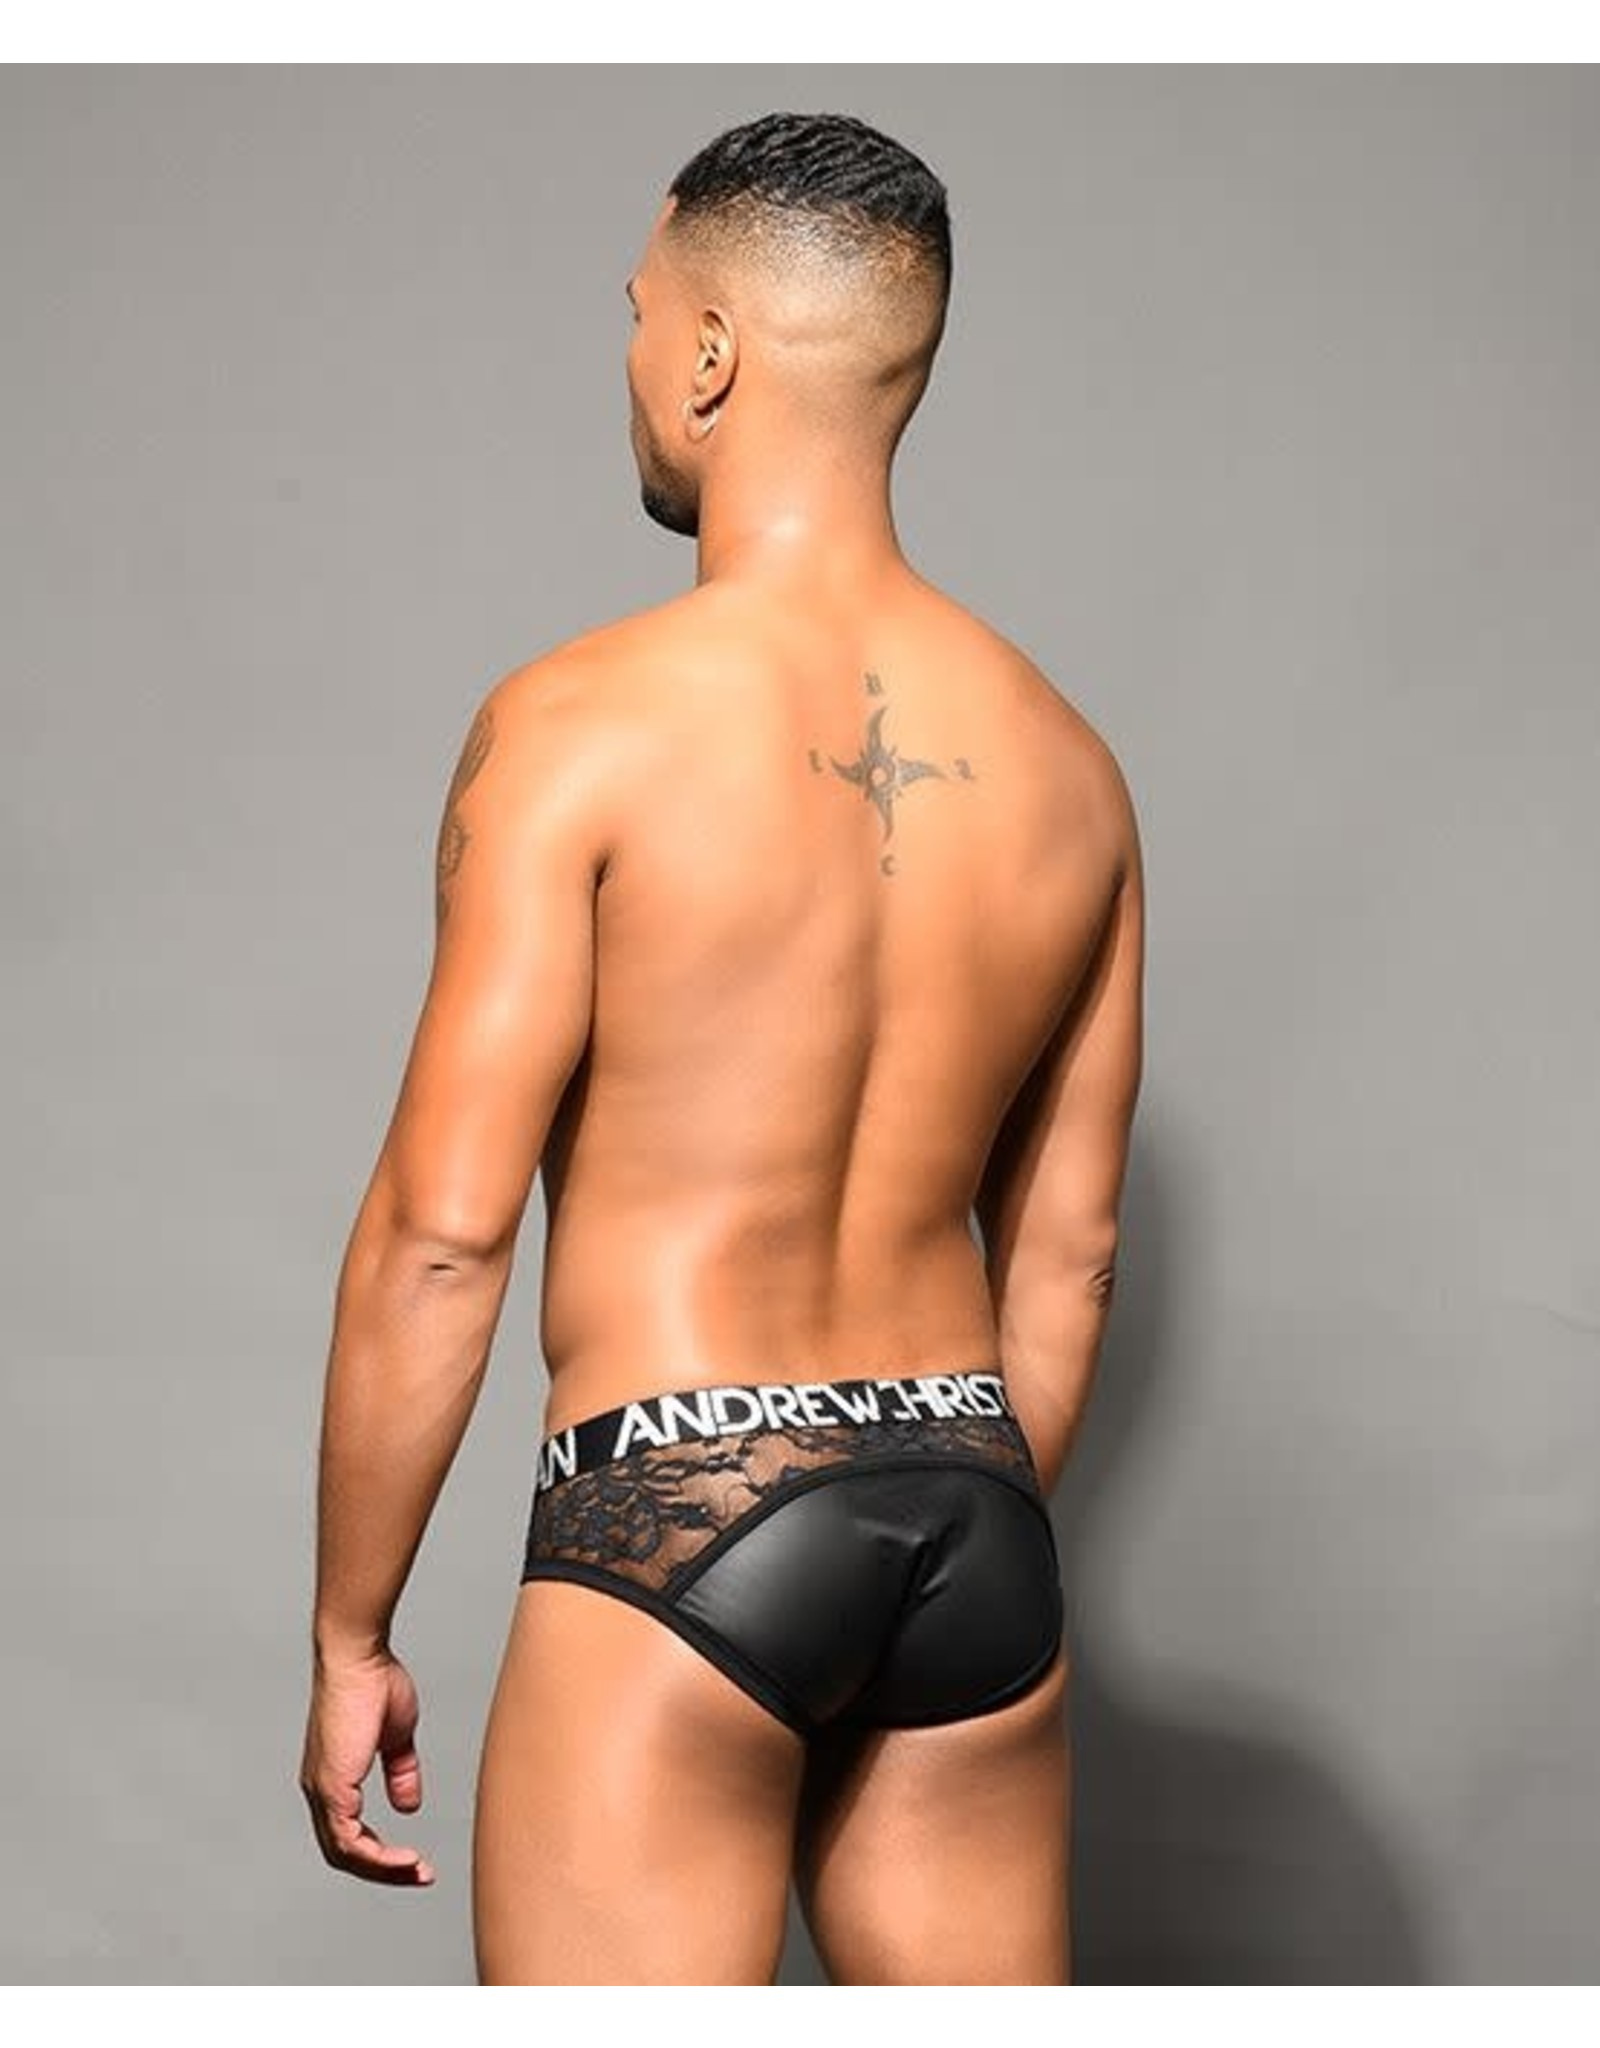 ANDREW CHRISTIAN ANDREW CHRISTIAN - NAUGHTY LACE BRIEF W/ ALMOST NAKED LARGE